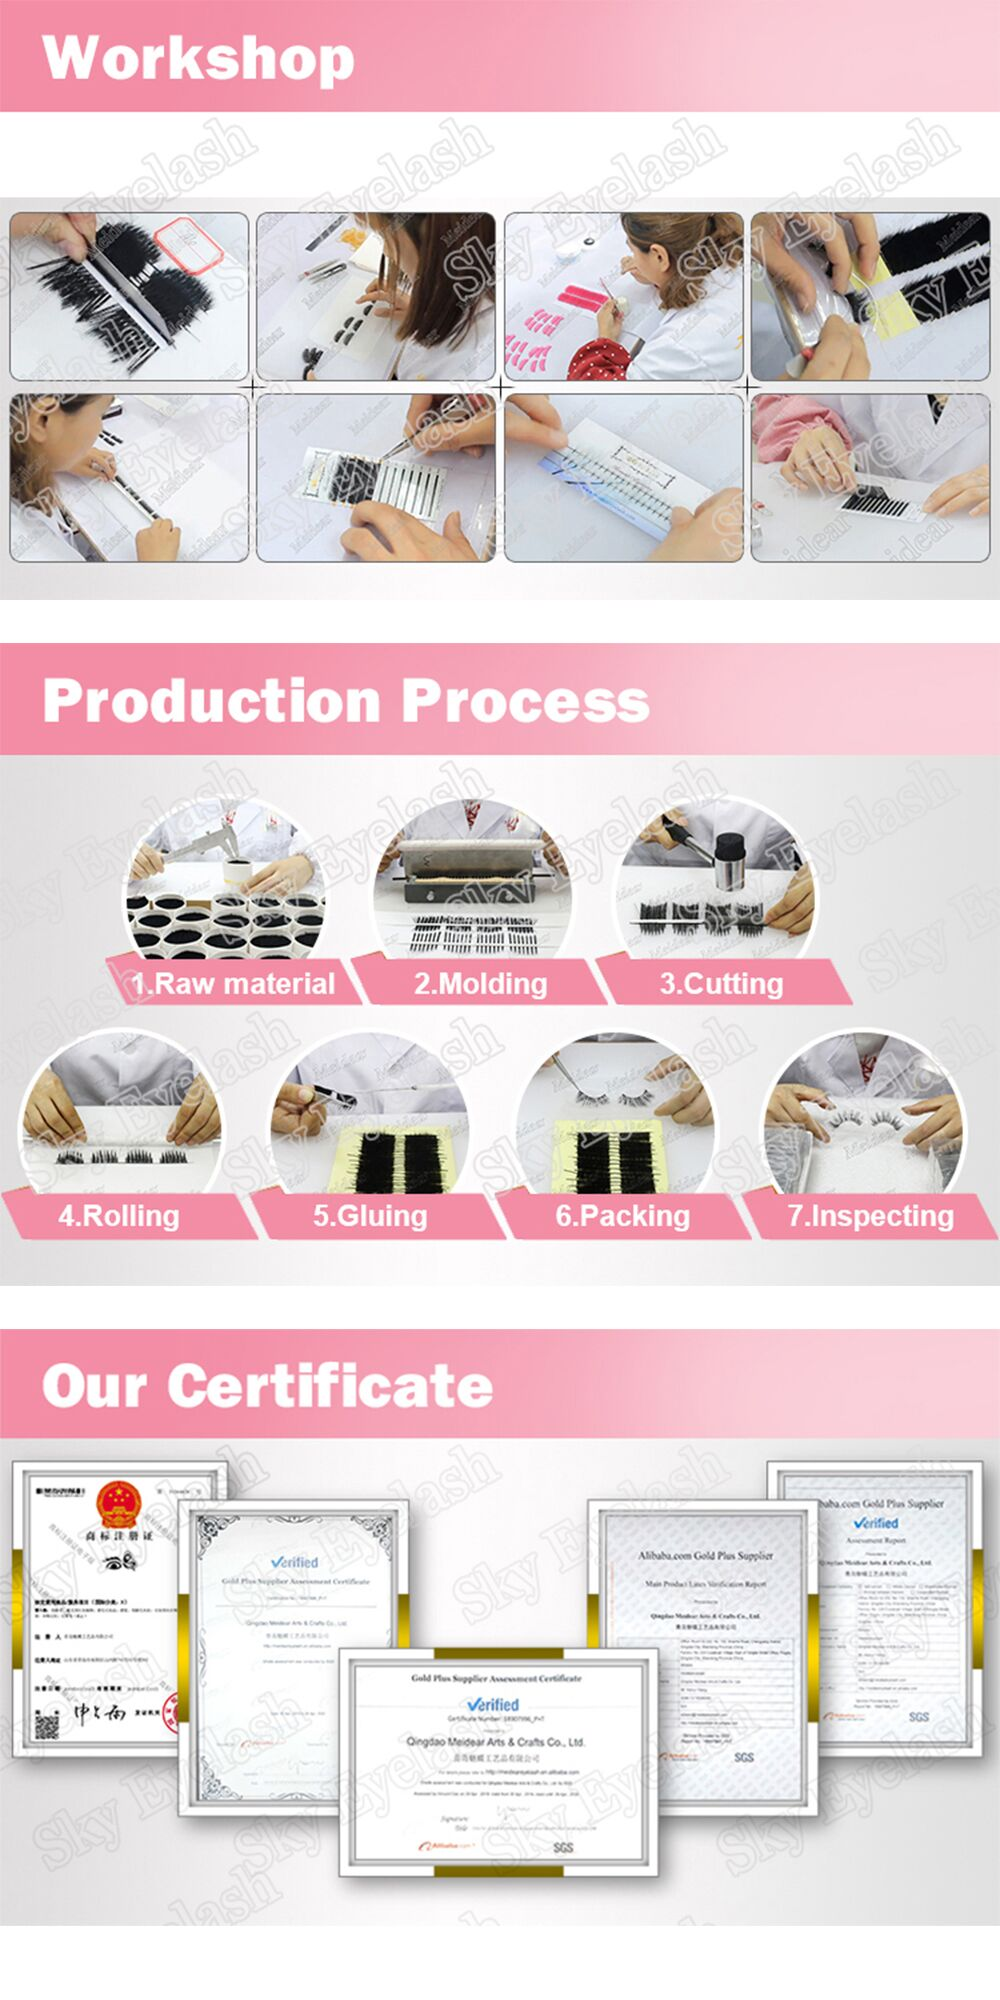 Professional-eyelash-vendor-handmade-reusable-3D-mink-lash-packing-with-private-label.jpg